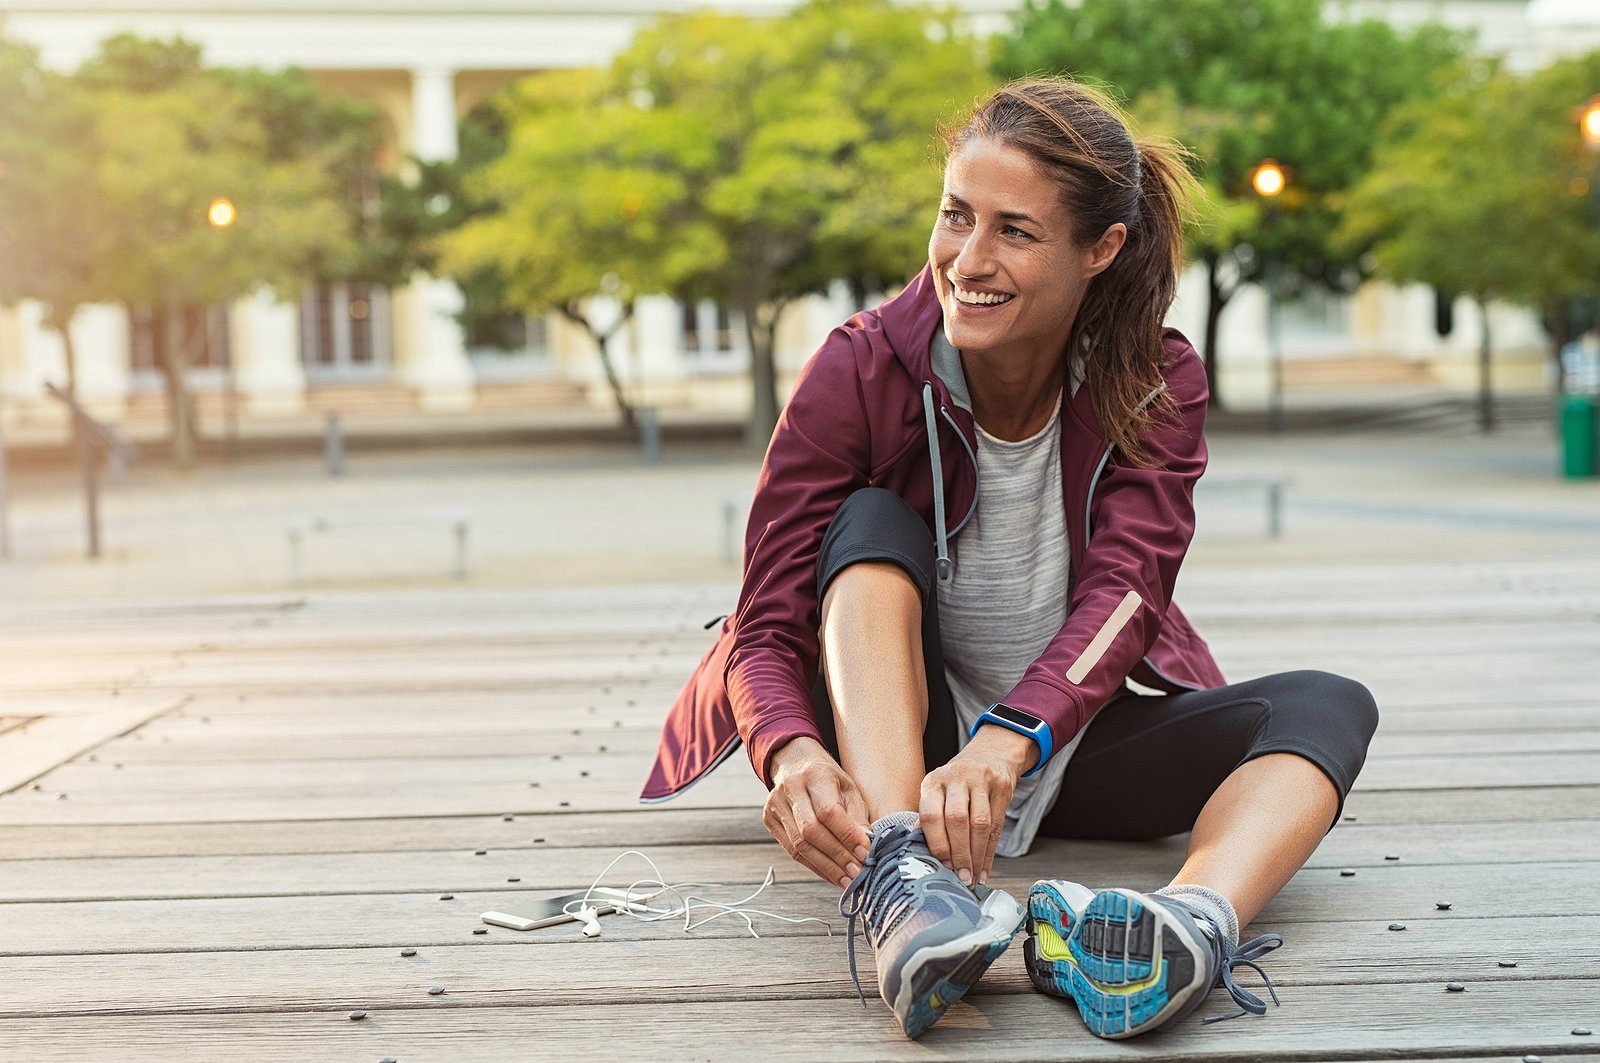 woman pausing while excercising to tie her shoe